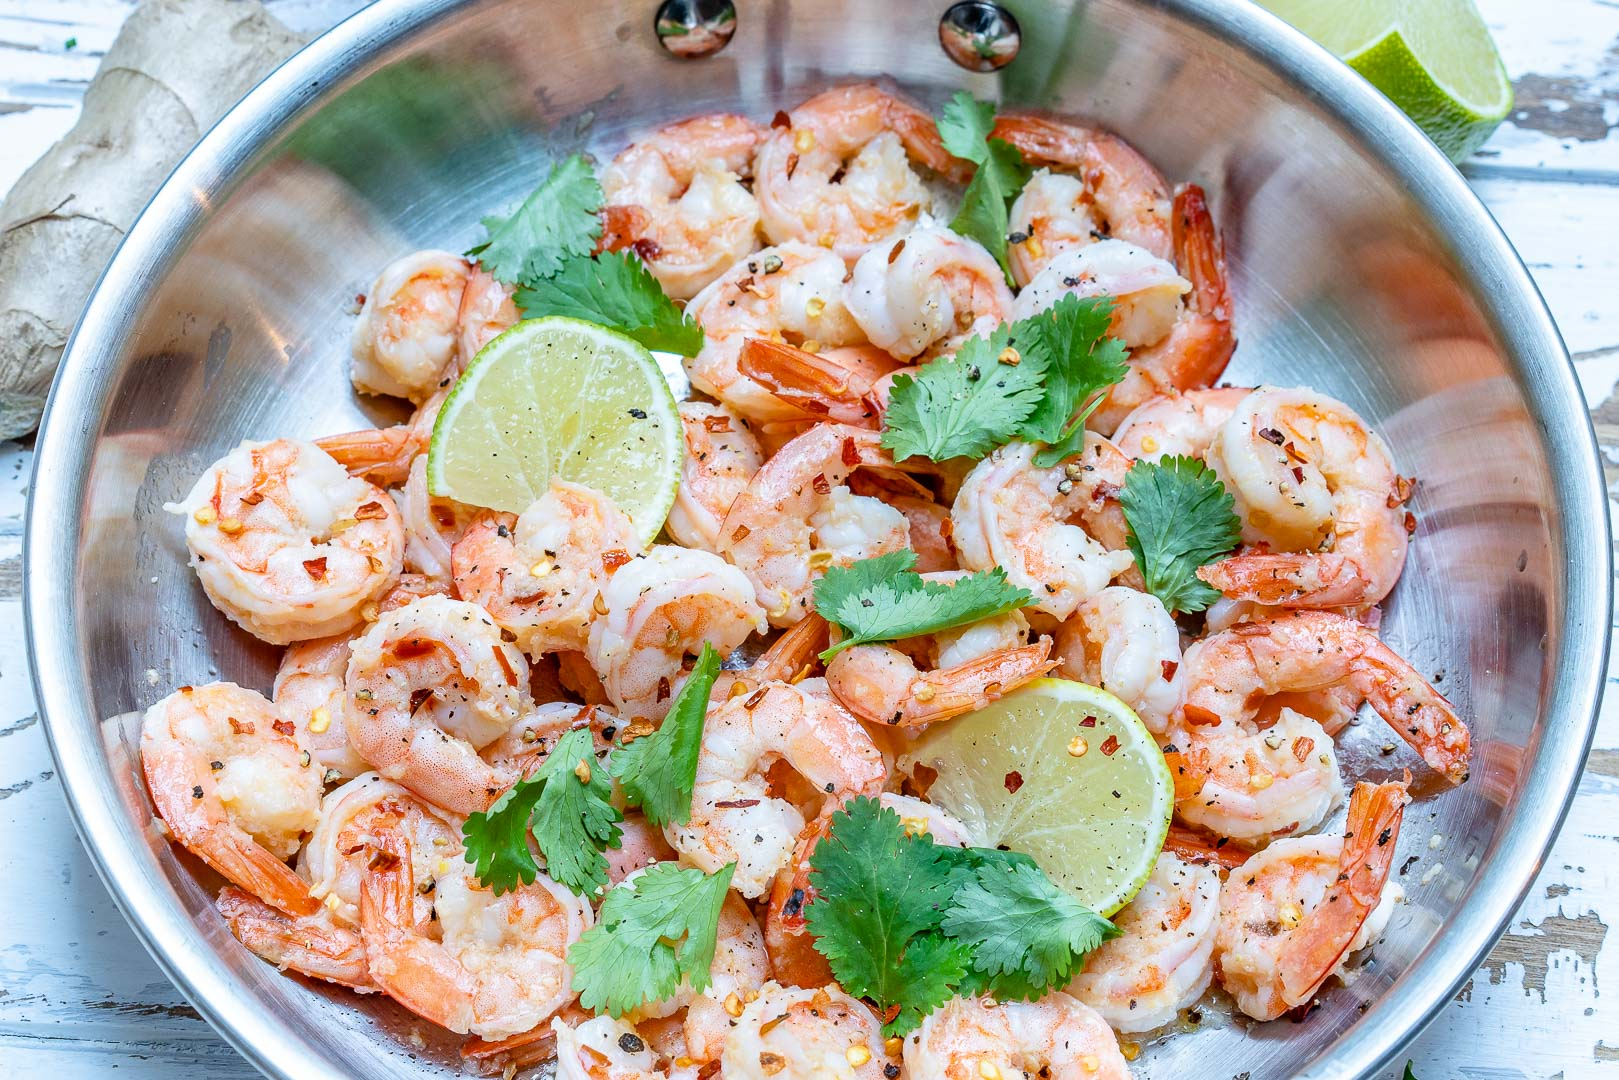 Spicy Cilantro Lime Shrimp Skillet